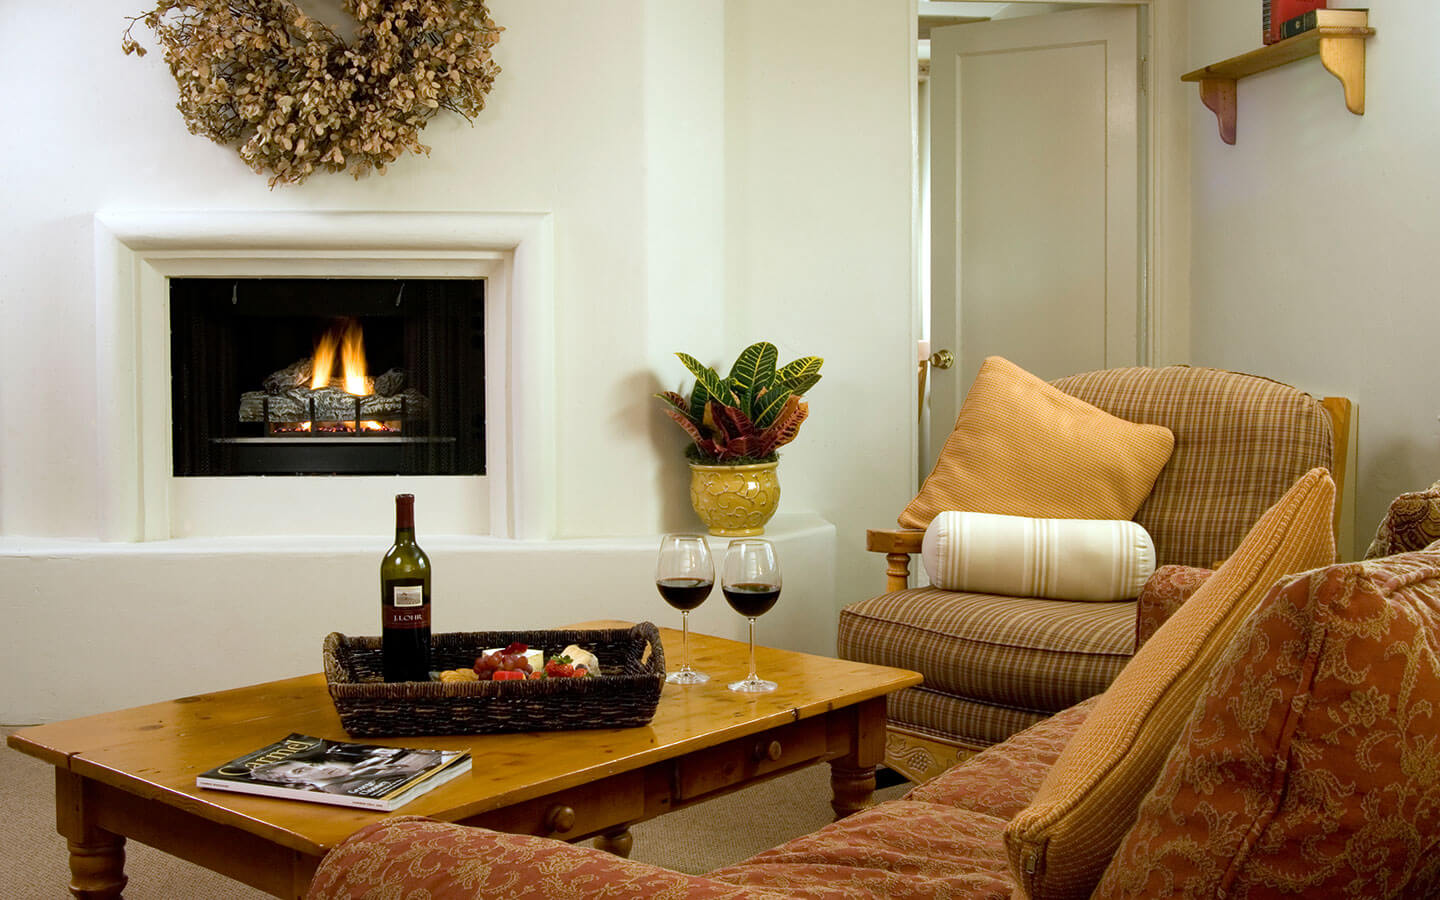 unwind by the fire at our cozy Carmel bed and breakfast